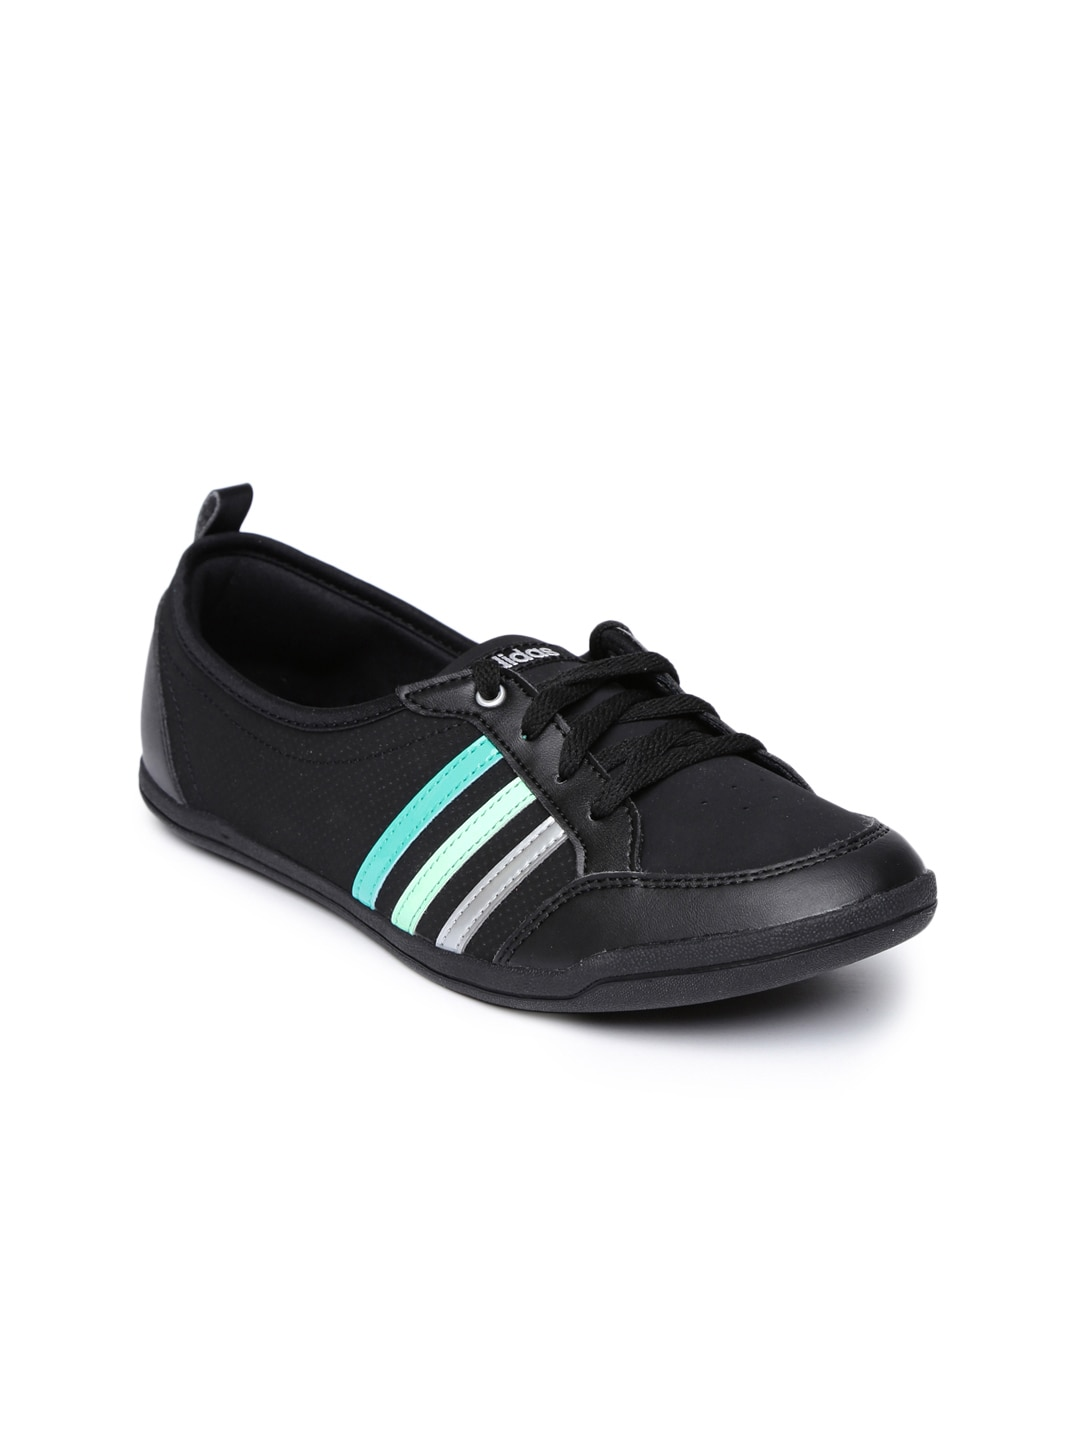 adidas neo casual shoes stockholmsnyheter nu